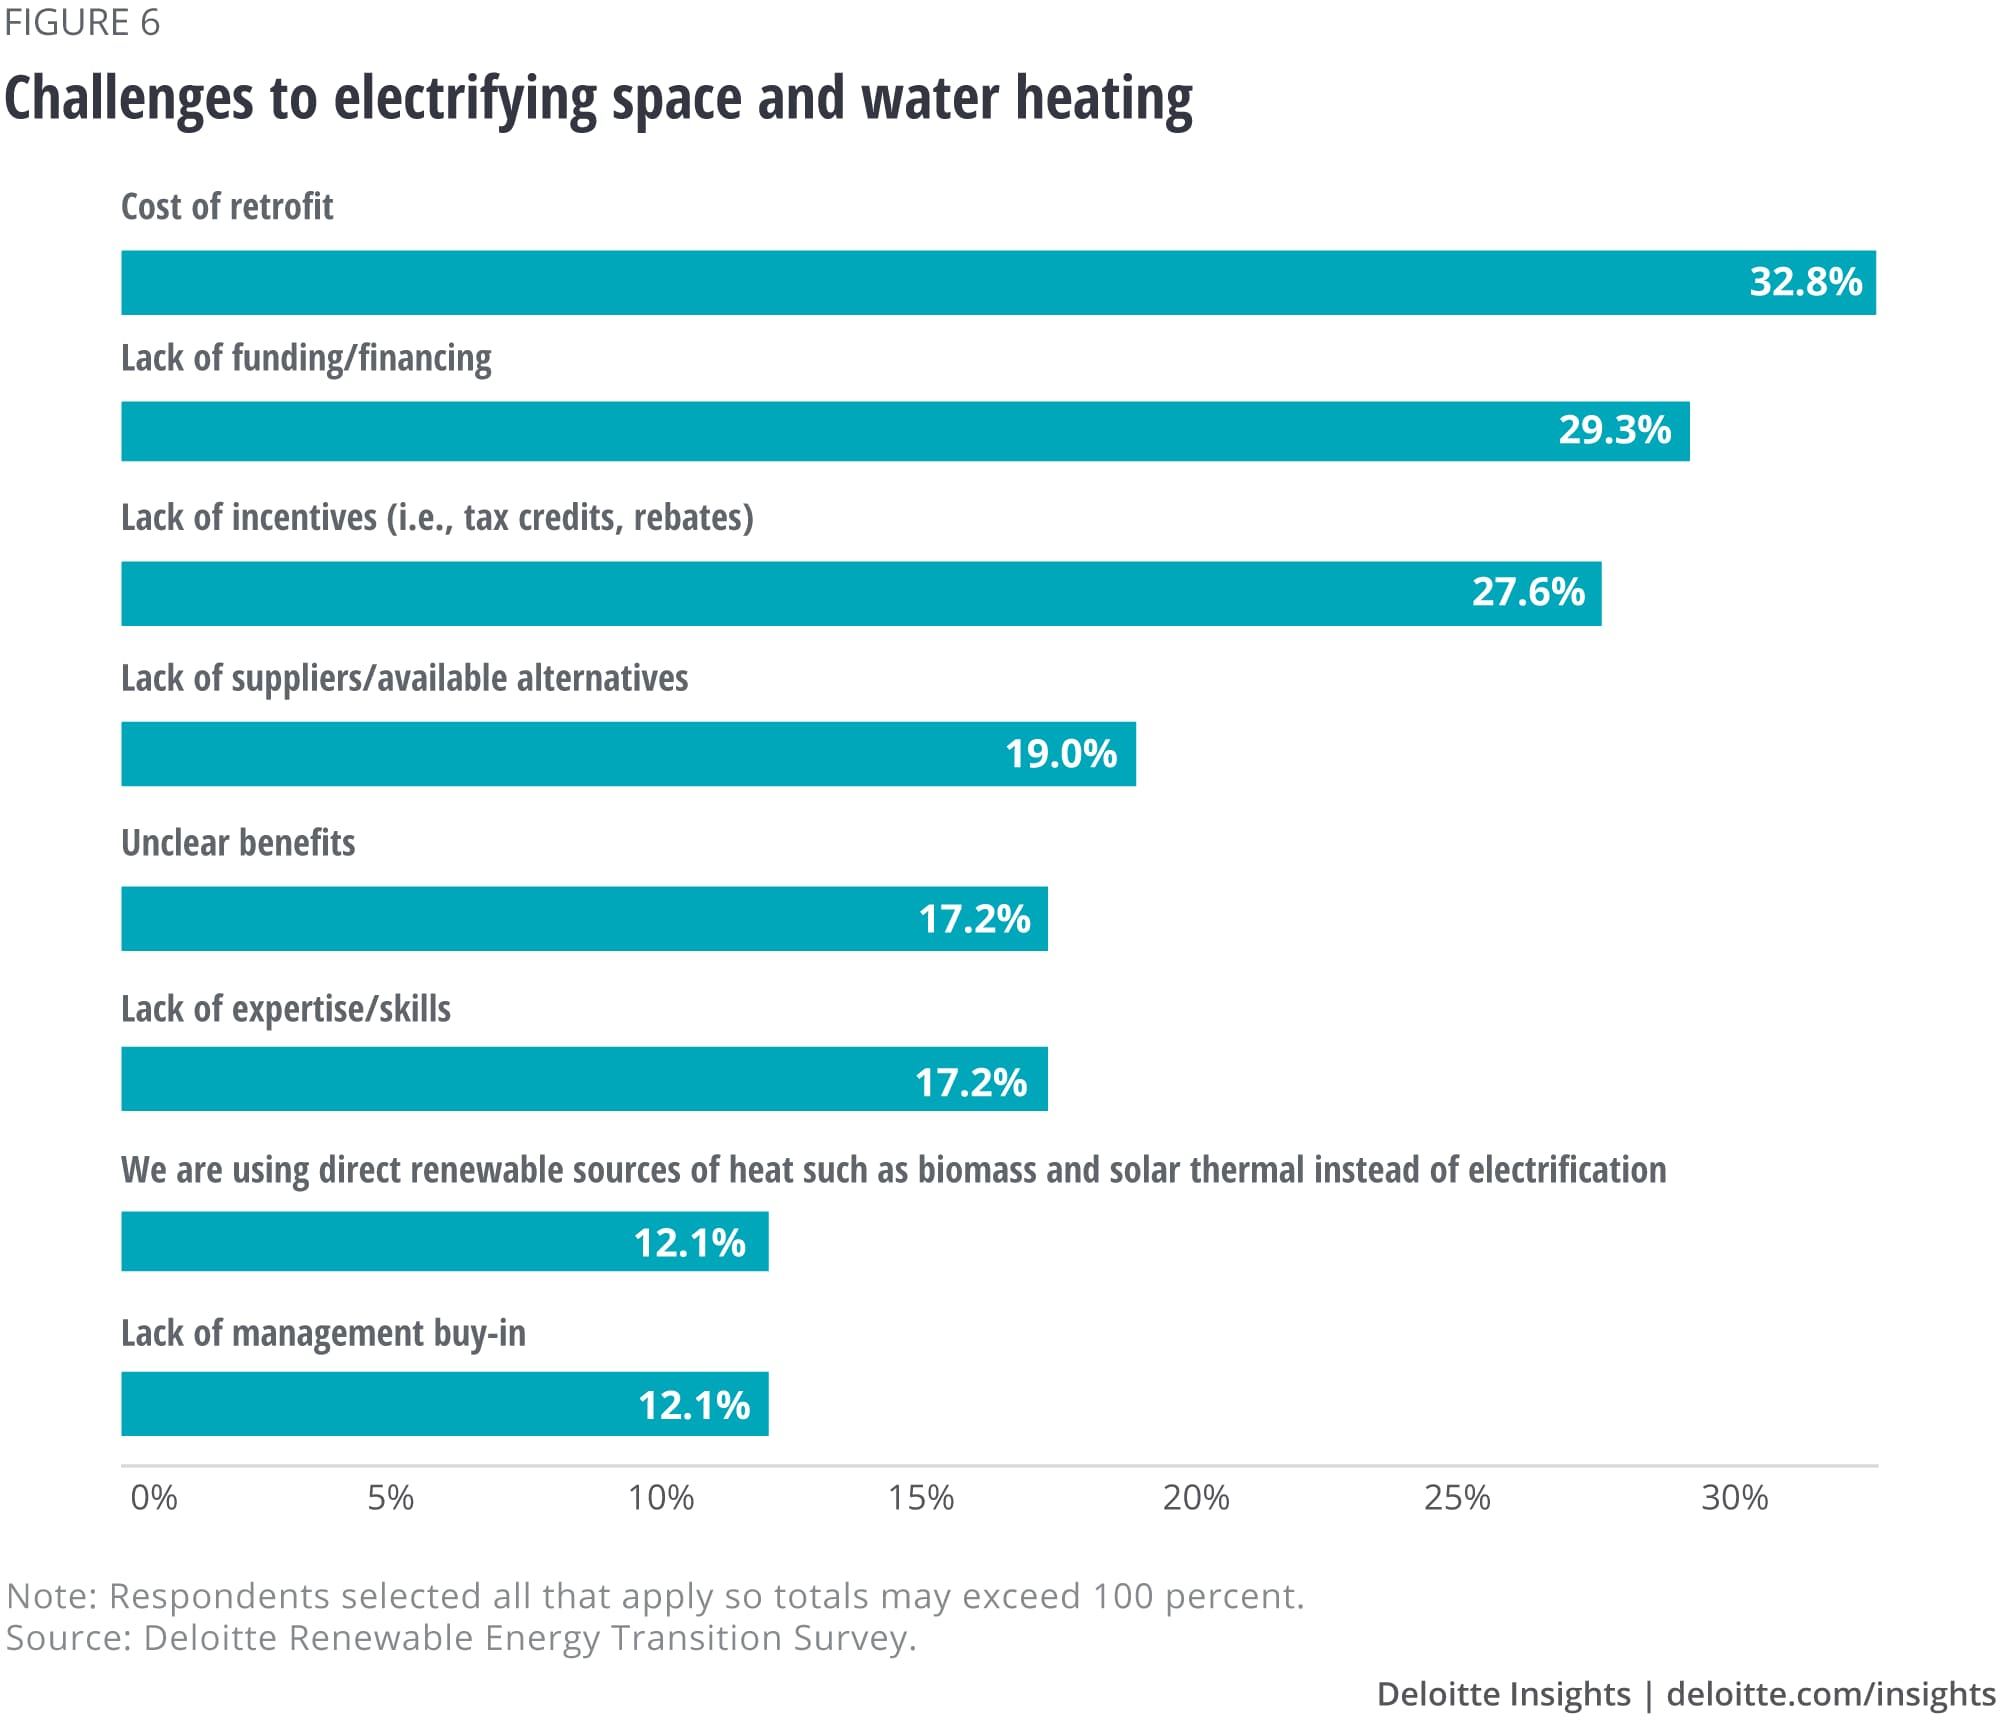 Challenges to electrifying space and water heating